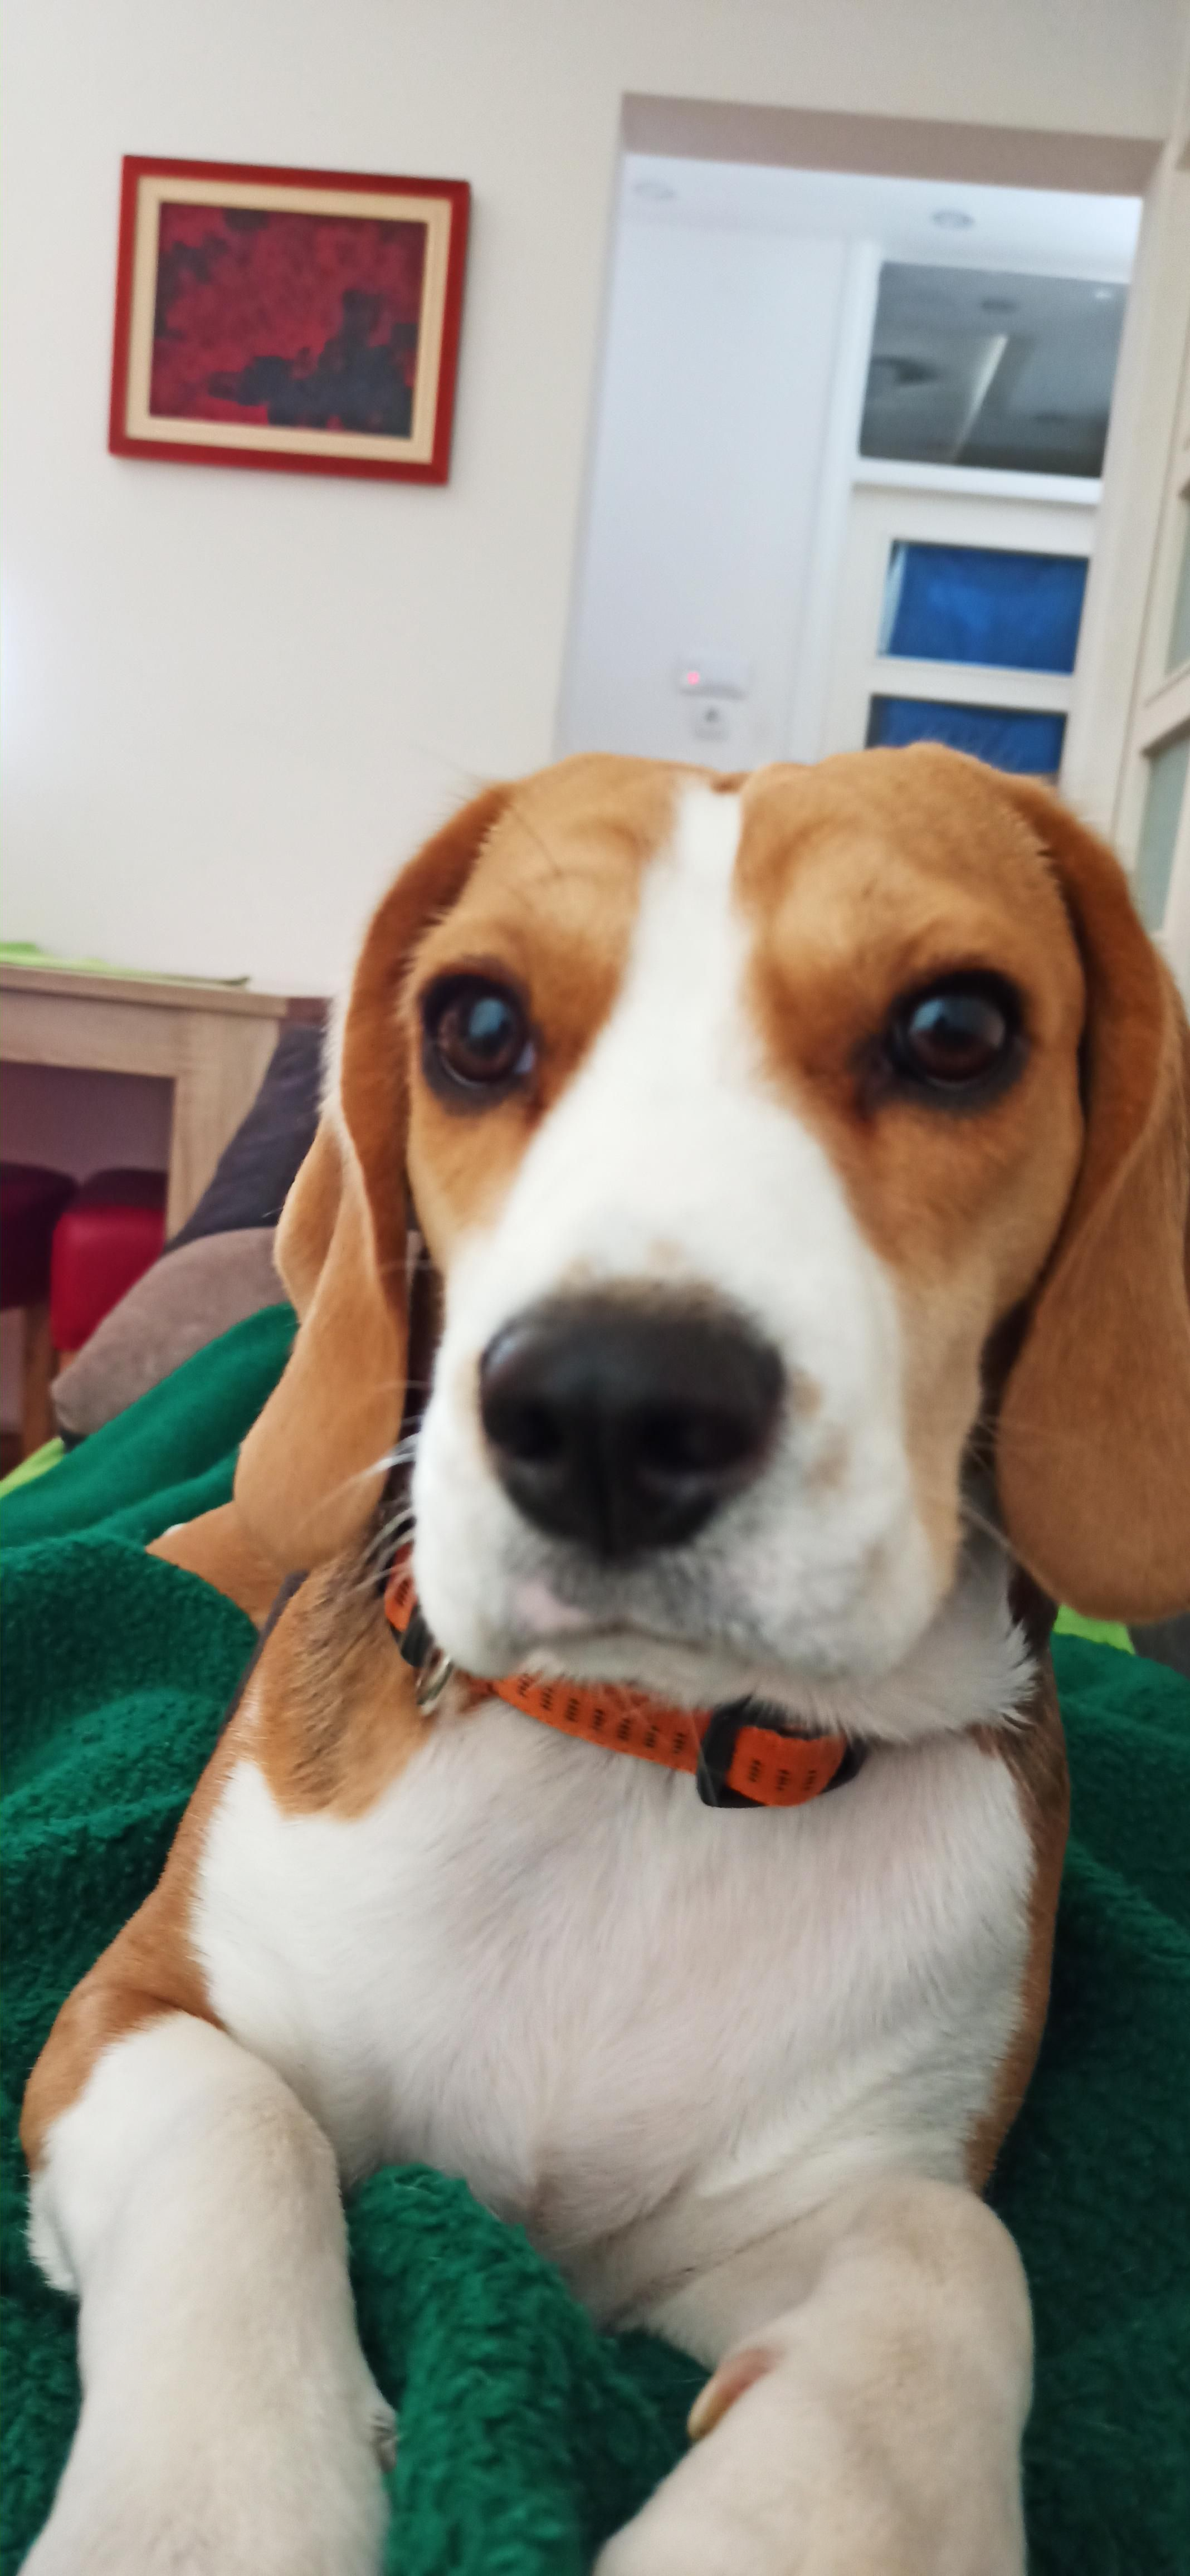 Do You Wake Up To This Https Ift Tt 2x3rhxo In 2020 Beagle